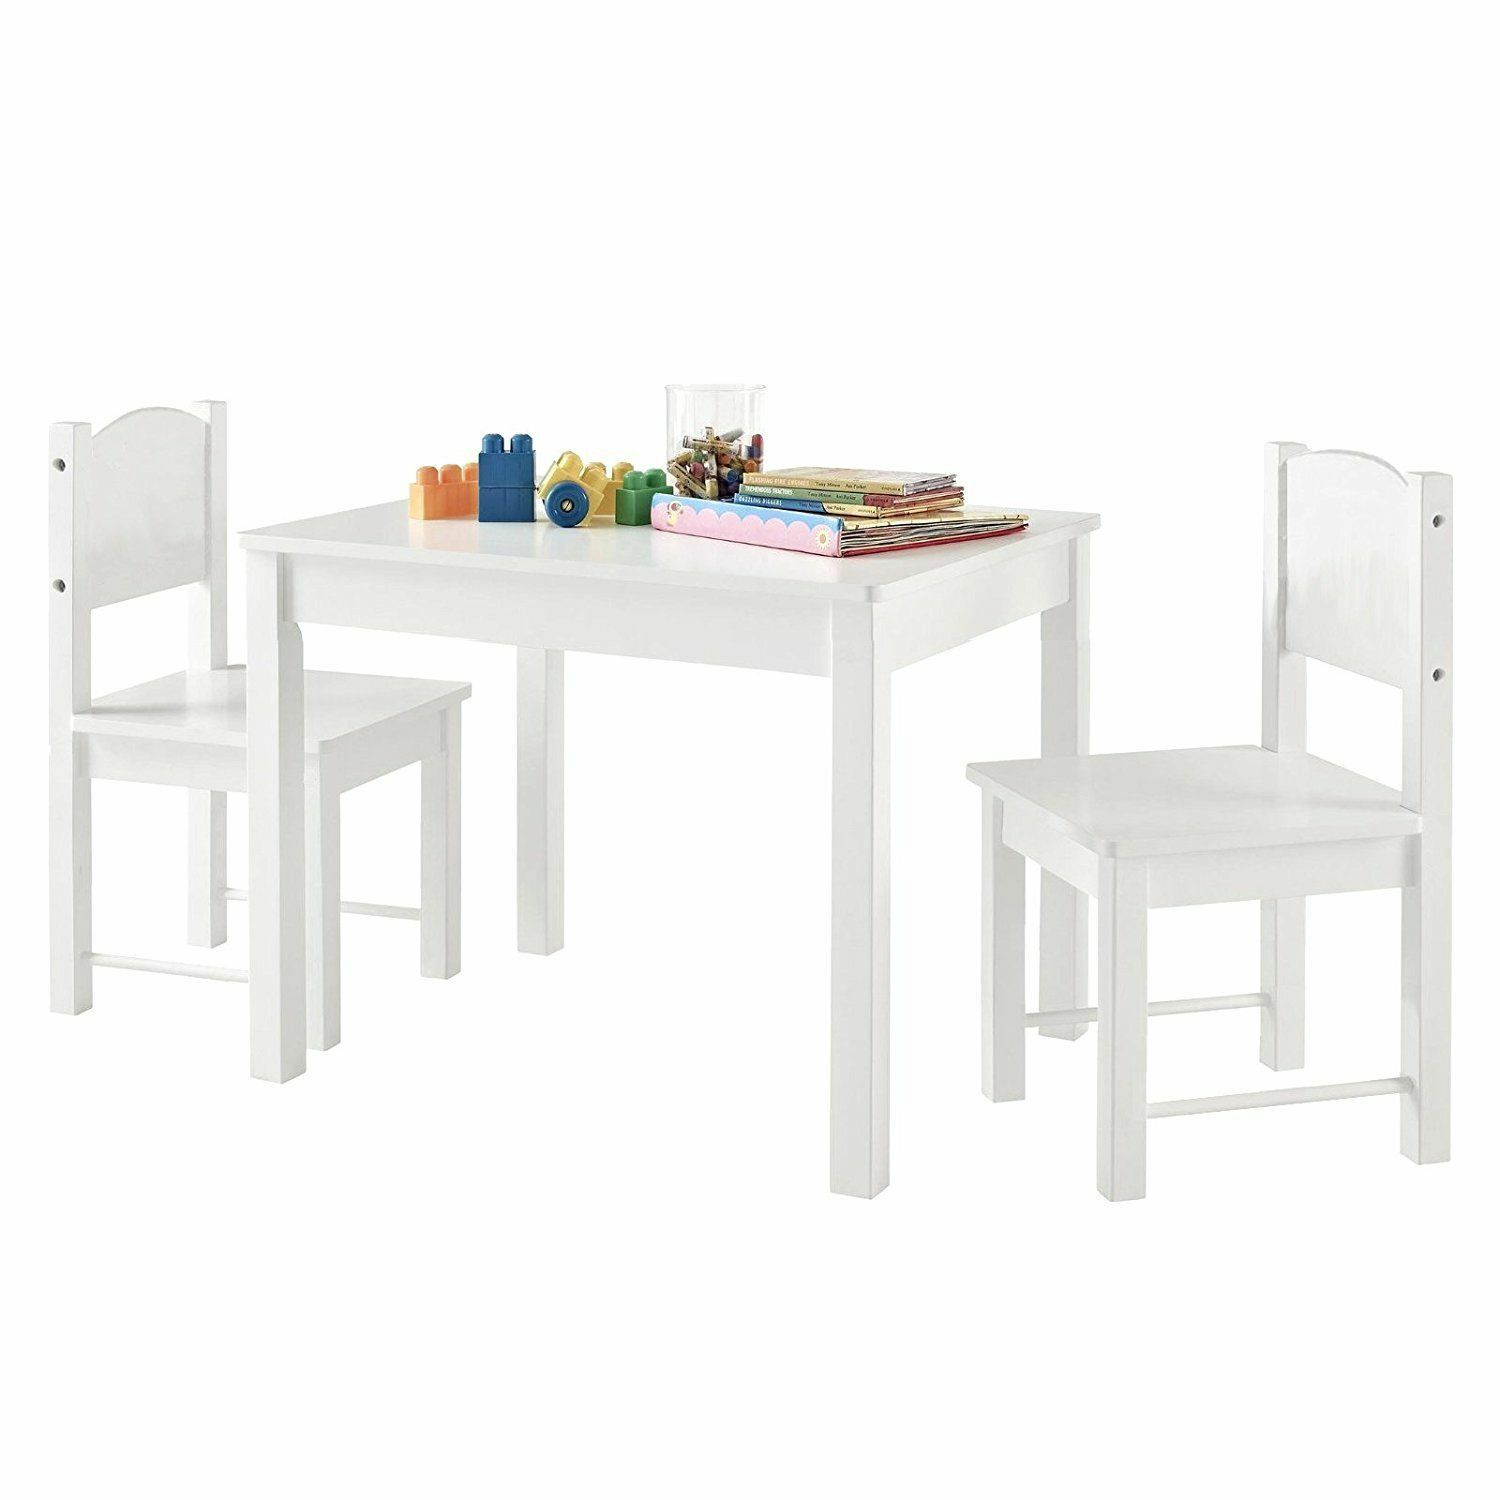 Marvelous Details About Kids Wooden Table And Chairs Set Play Eat Activity Furniture Toddler Drawing Uk Home Interior And Landscaping Oversignezvosmurscom